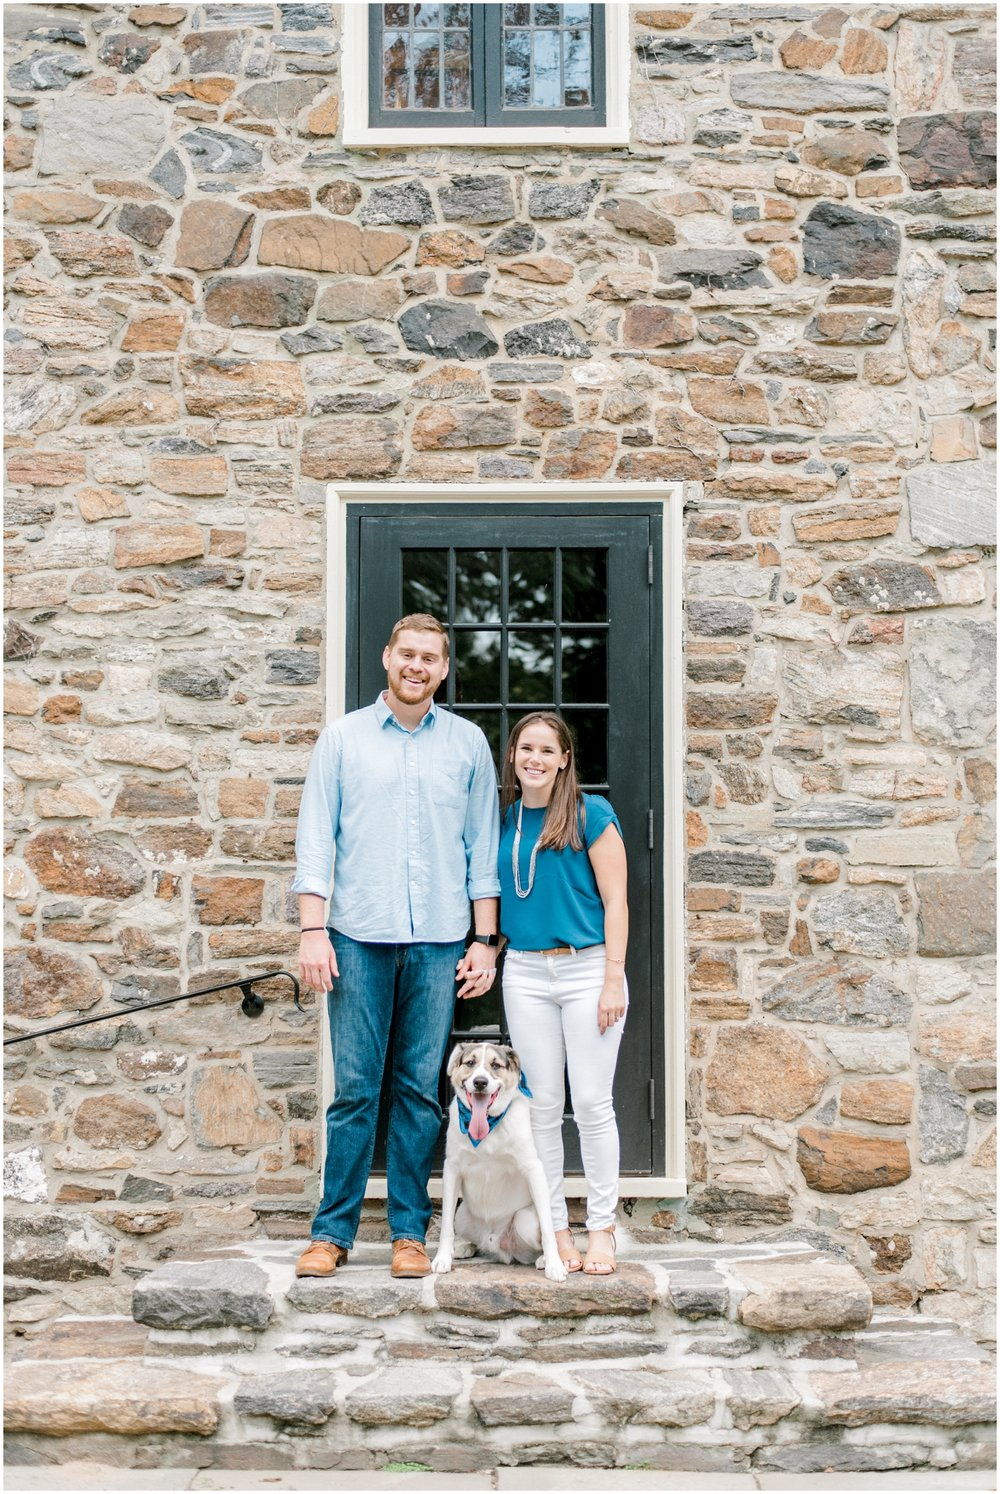 Summer Engagement Session at Hunting Hill Mansion - Krista Brackin Photography_0039.jpg